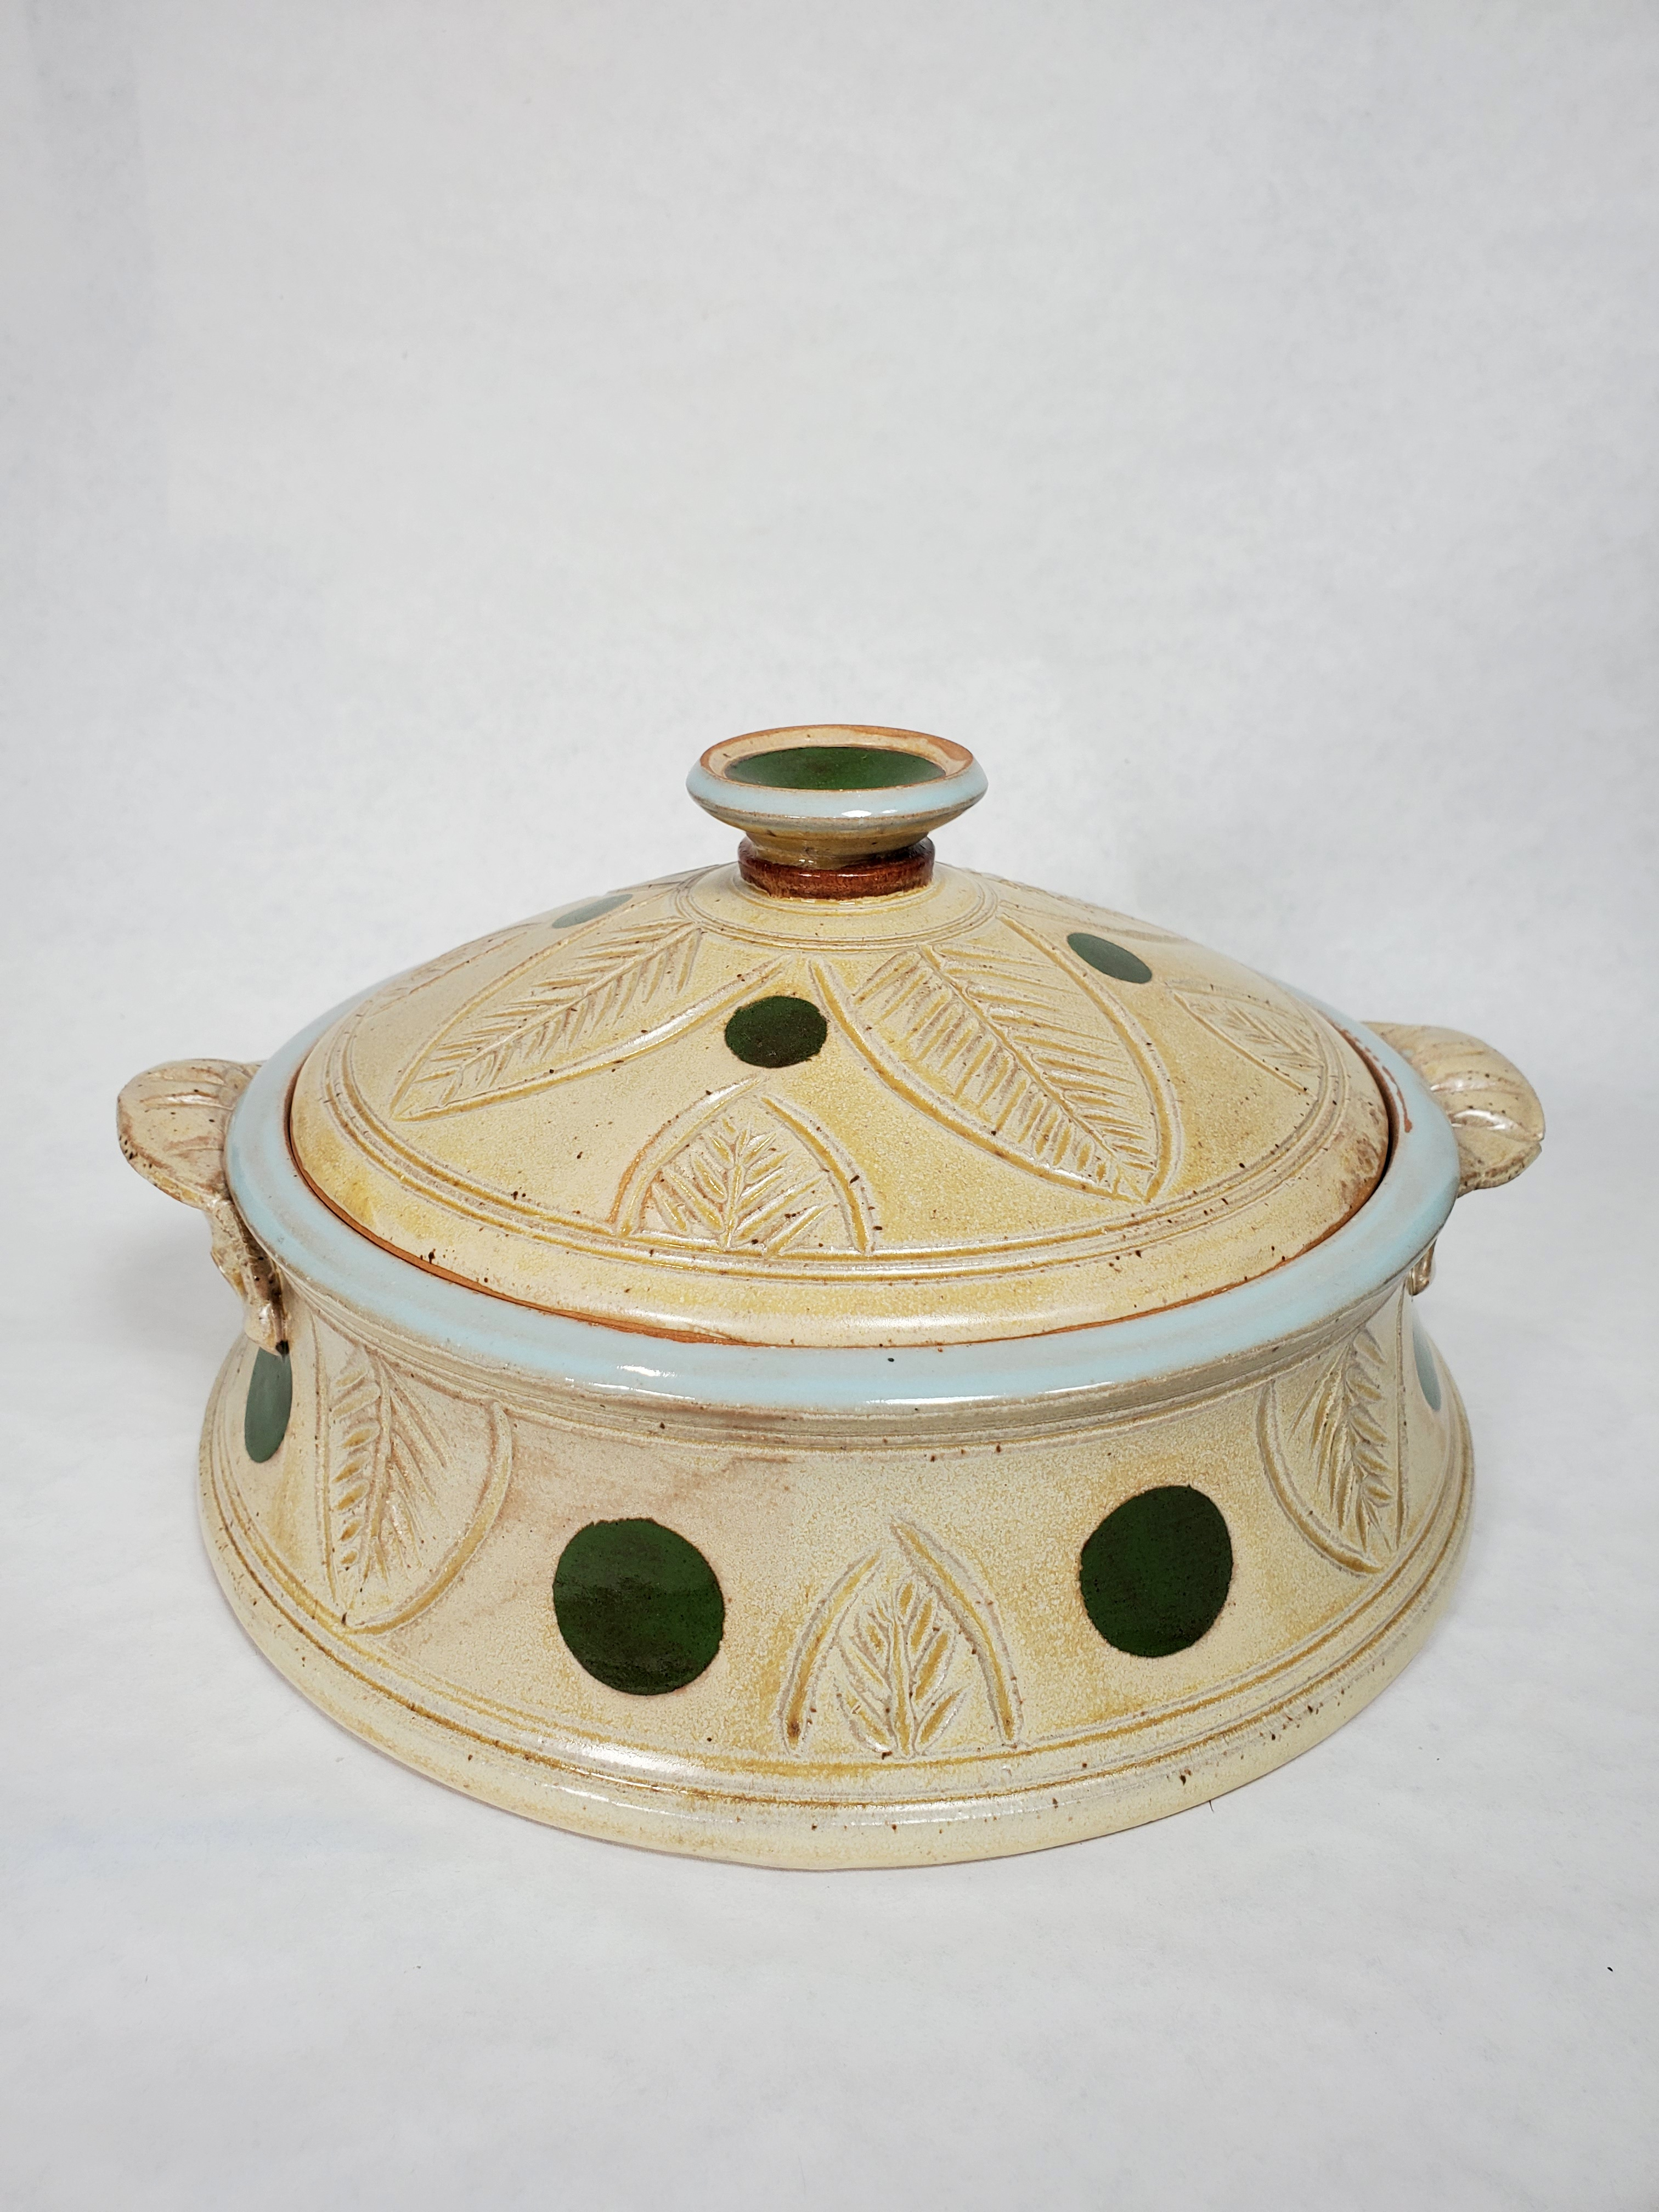 Lidded Casserole Dish with handles